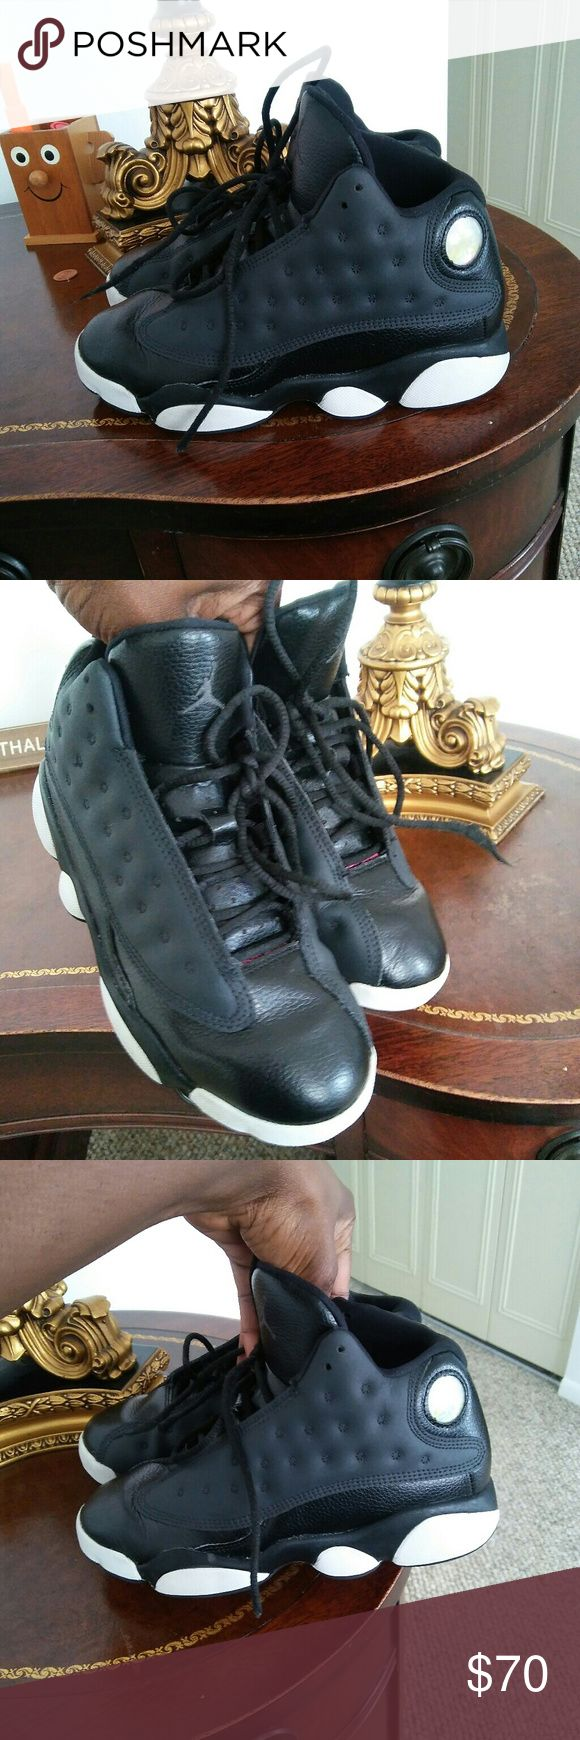 Kids Jordan's 23 This Jordan is in great condition was gentle wear a few time black and white hot pink in the bottom size 2 and a half perfect for school Jordan's 23 Shoes Sneakers